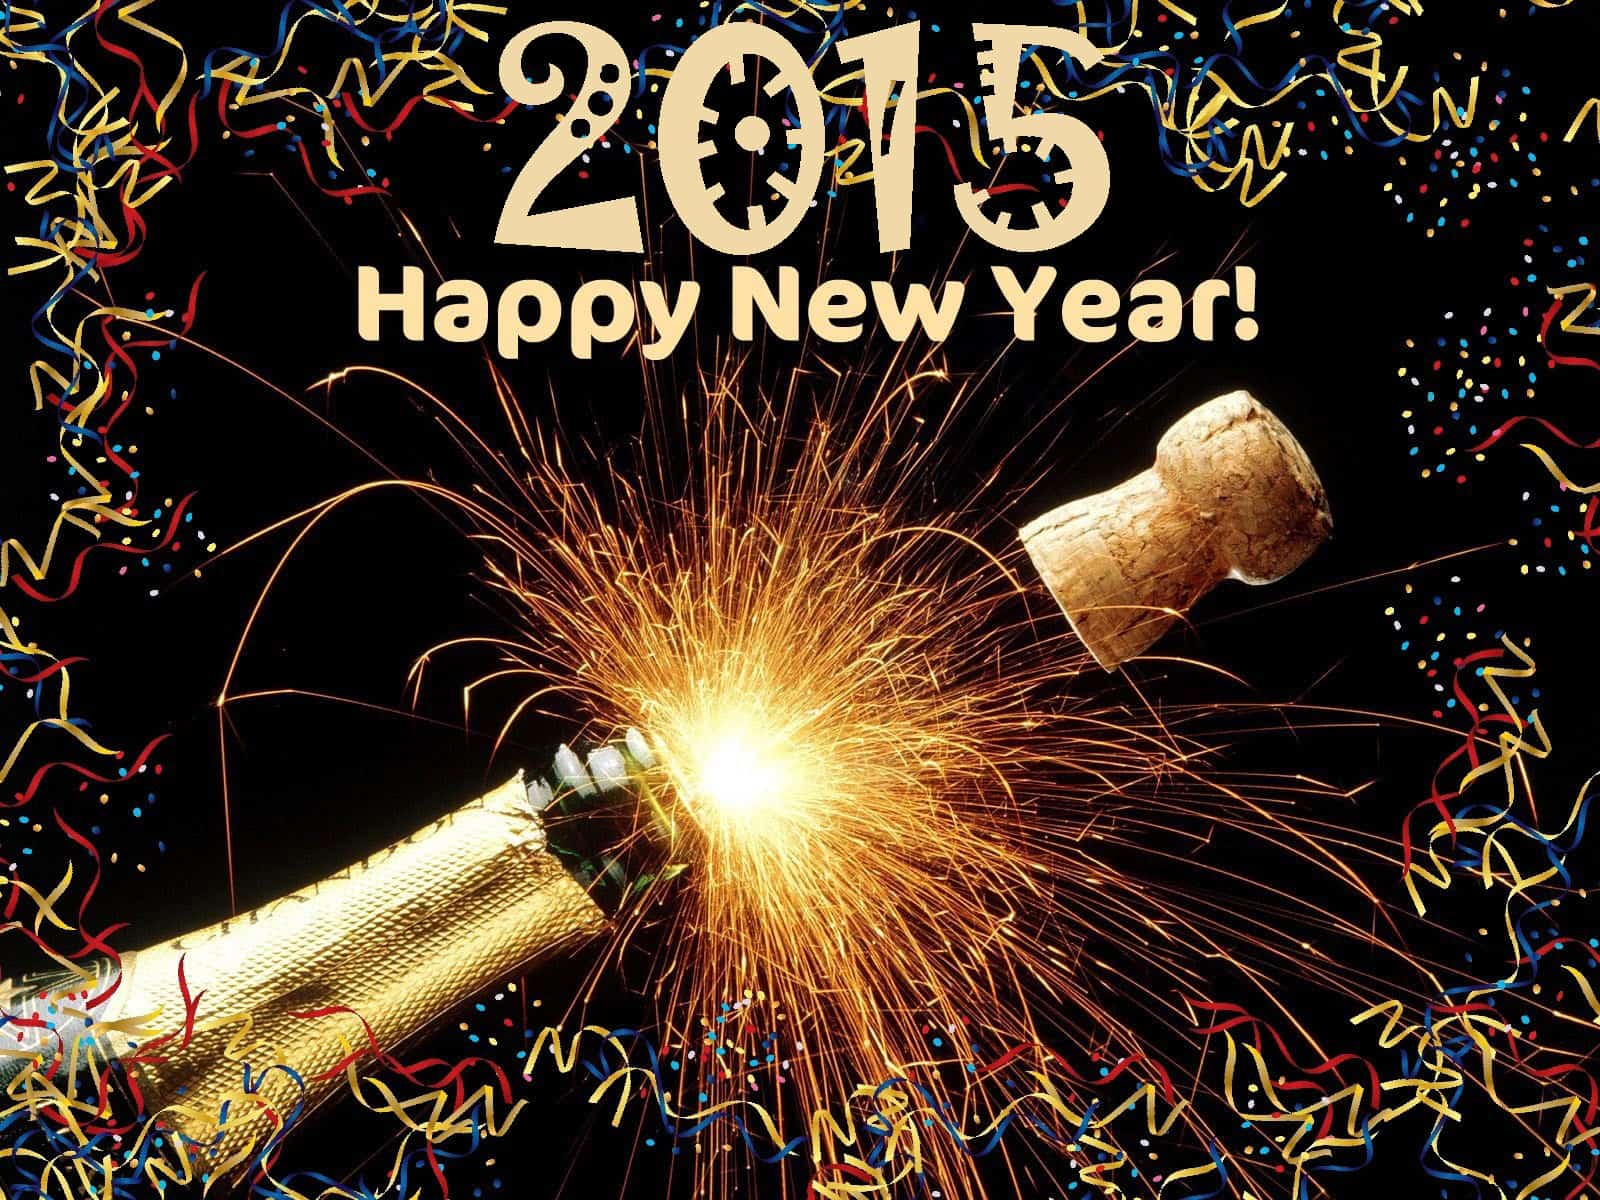 Wallpaper download new year 2015 - Happy New Year 2015 Photos Pics Pictures Free Download